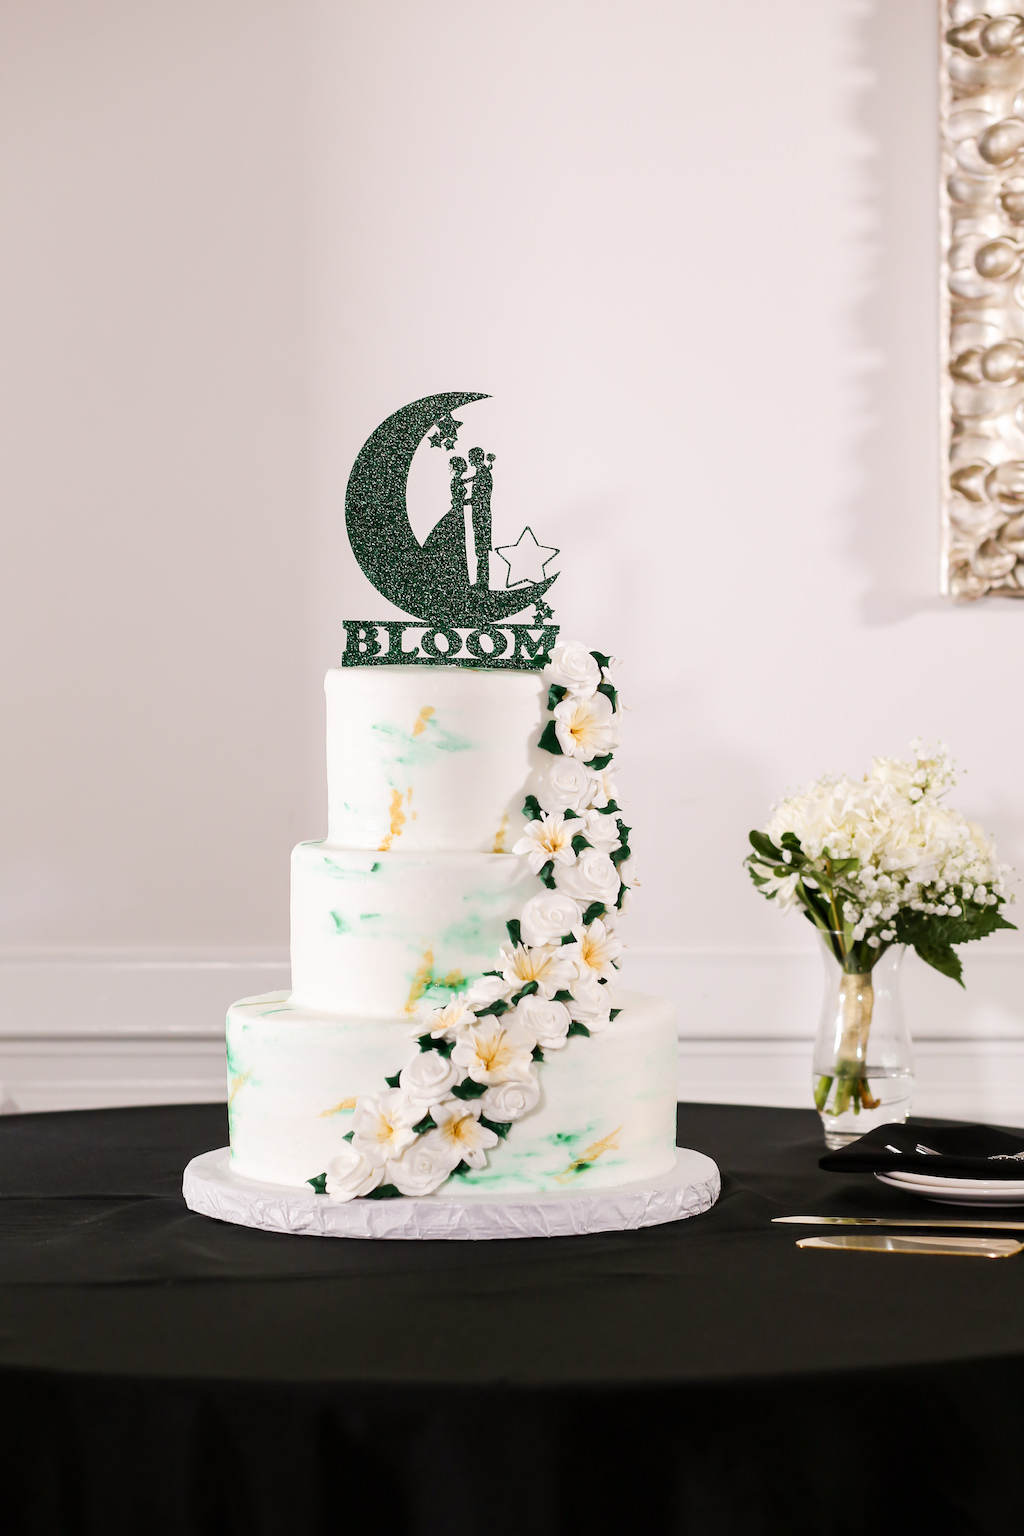 Three Tier White, Green and Gold Marble Wedding Cake with